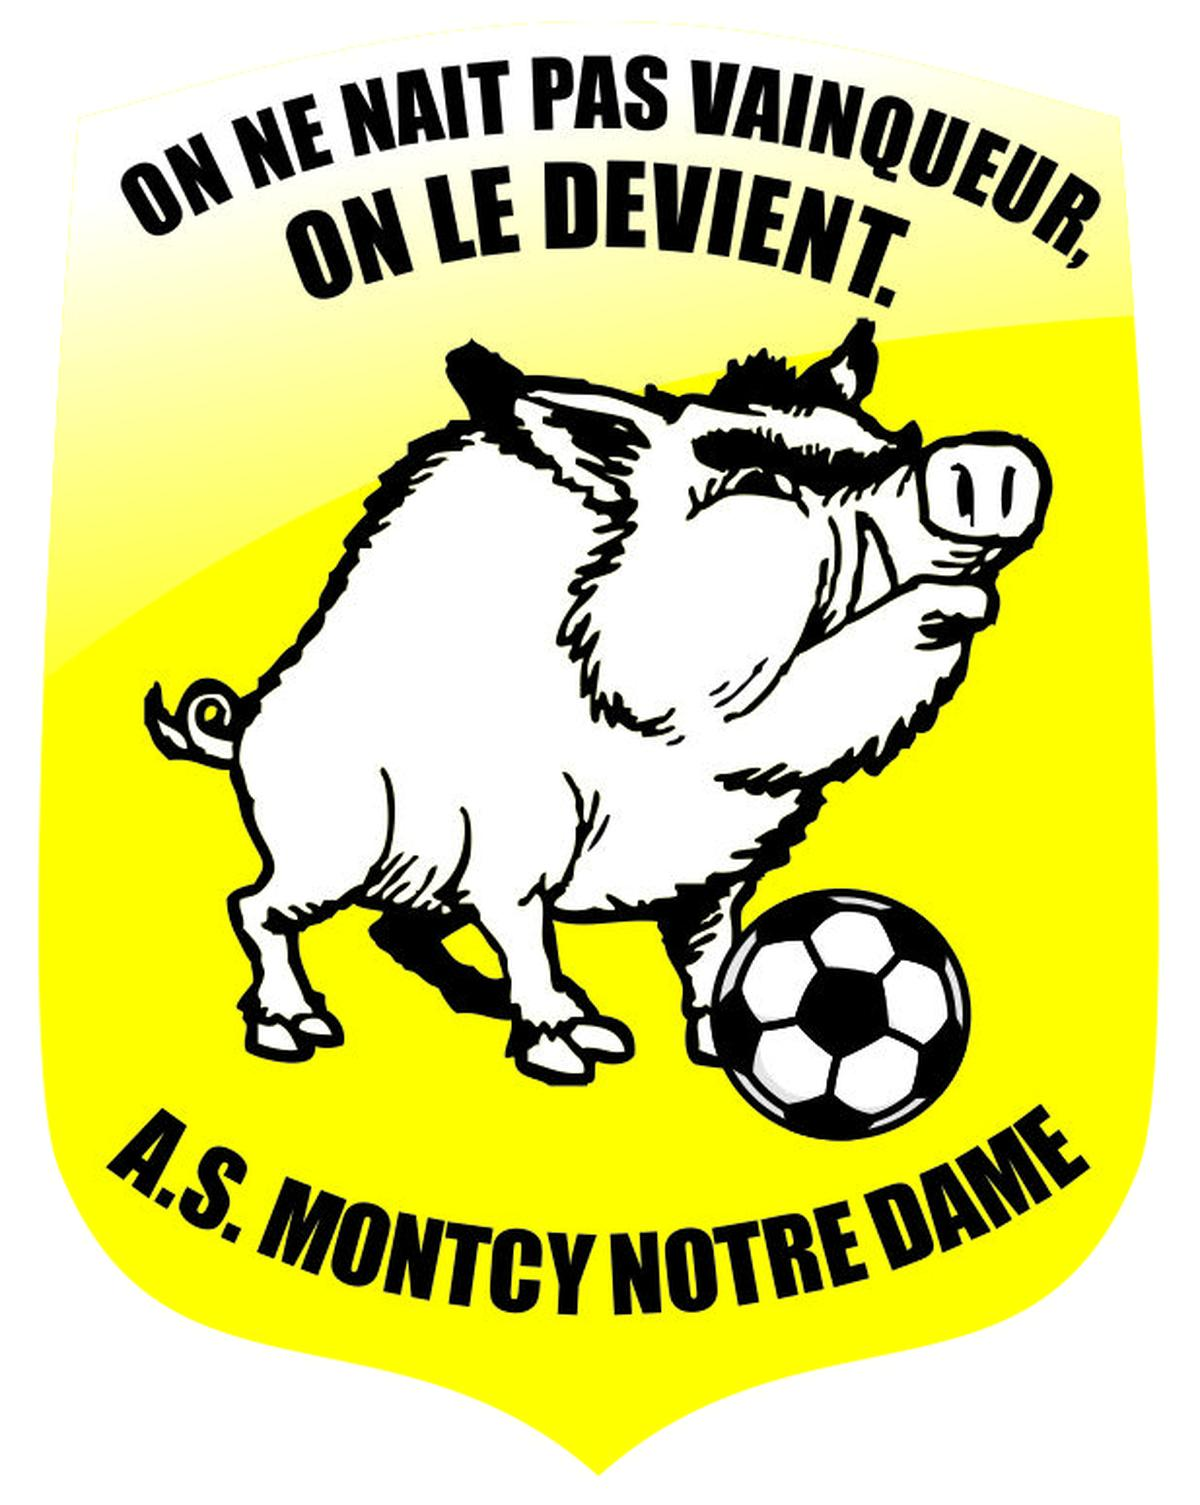 MONTCY NOTRE DAME AS